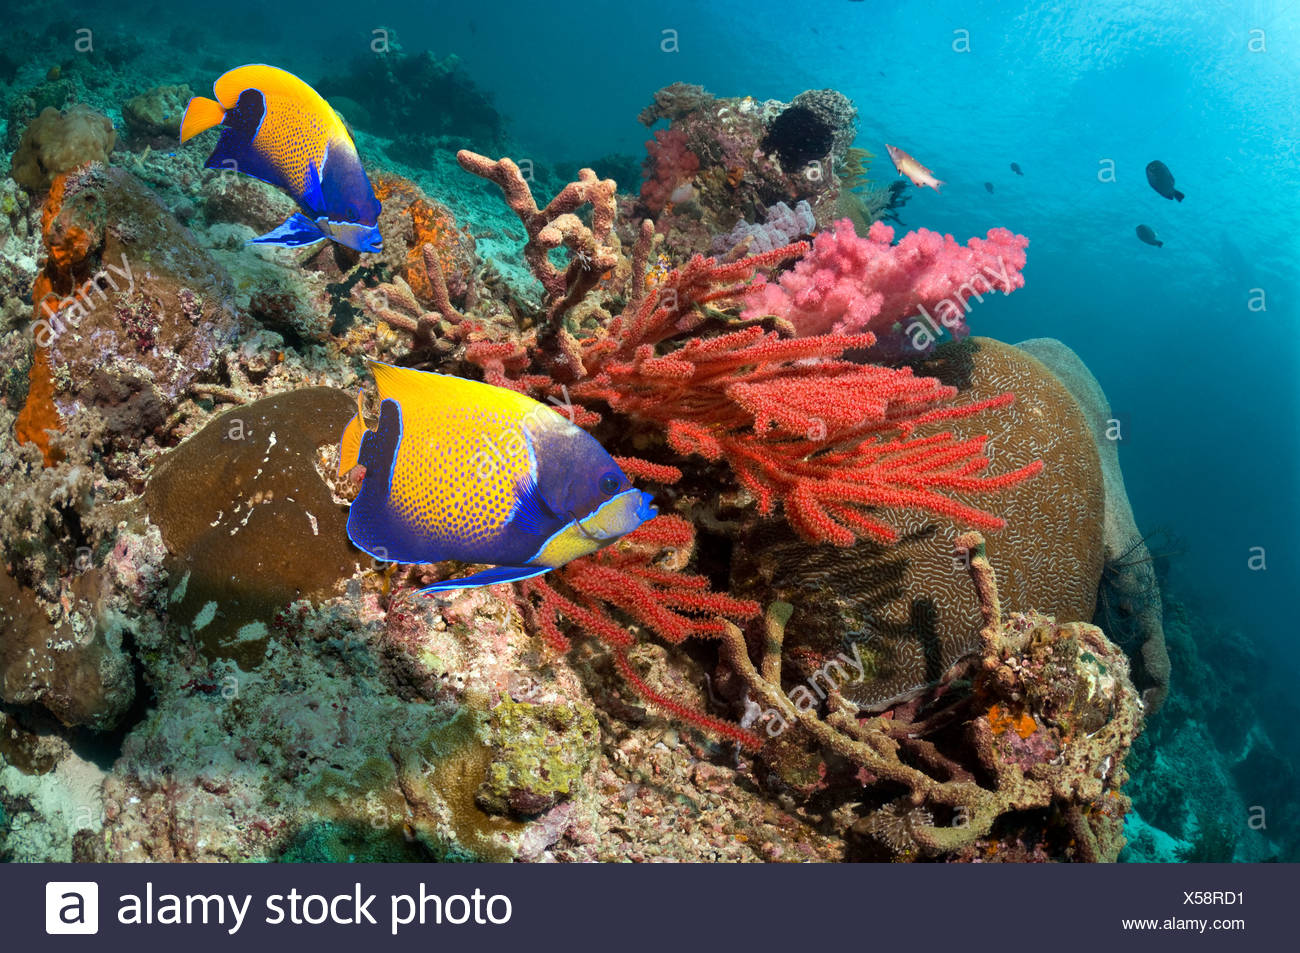 Blue-girdled angelfish swimming past soft coral on reef.  Misool, Raja Ampat, West Papua, Indonesia. Stock Photo